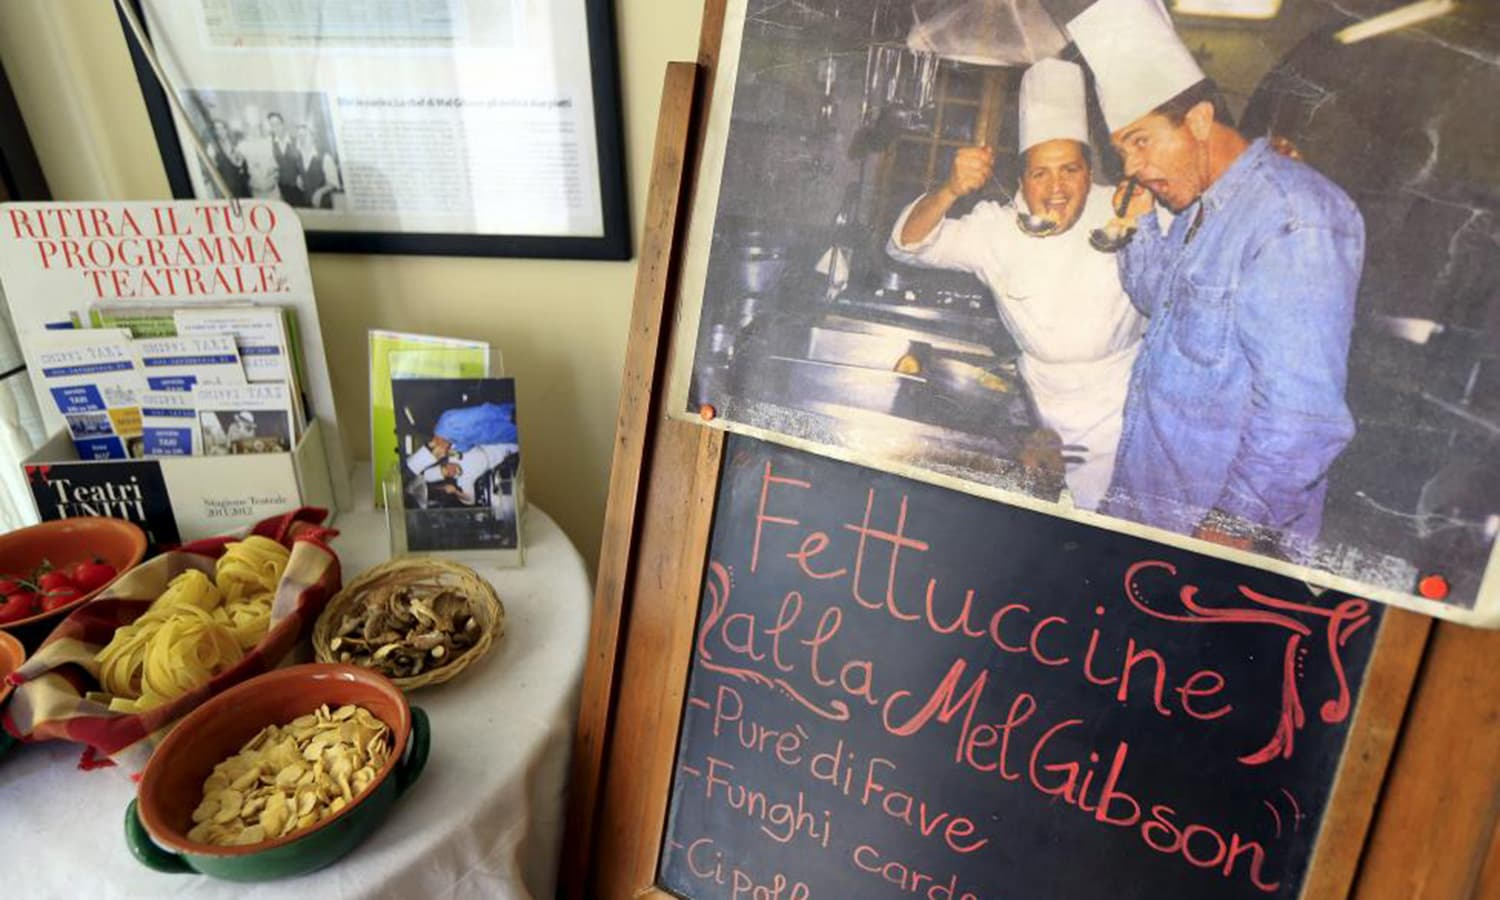 "Chef Gigi Sanrocco and actor Mel Gibson are seen in a picture posted on a blackboard at a restaurant in Matera, southern Italy April 30, 2015. The Australian-born actor is celebrated with the dish called """"Fettucine alla Mel Gibson"" in his honor at the popular Trattoria Lucana on Matera's main drag, the Via Lucana."